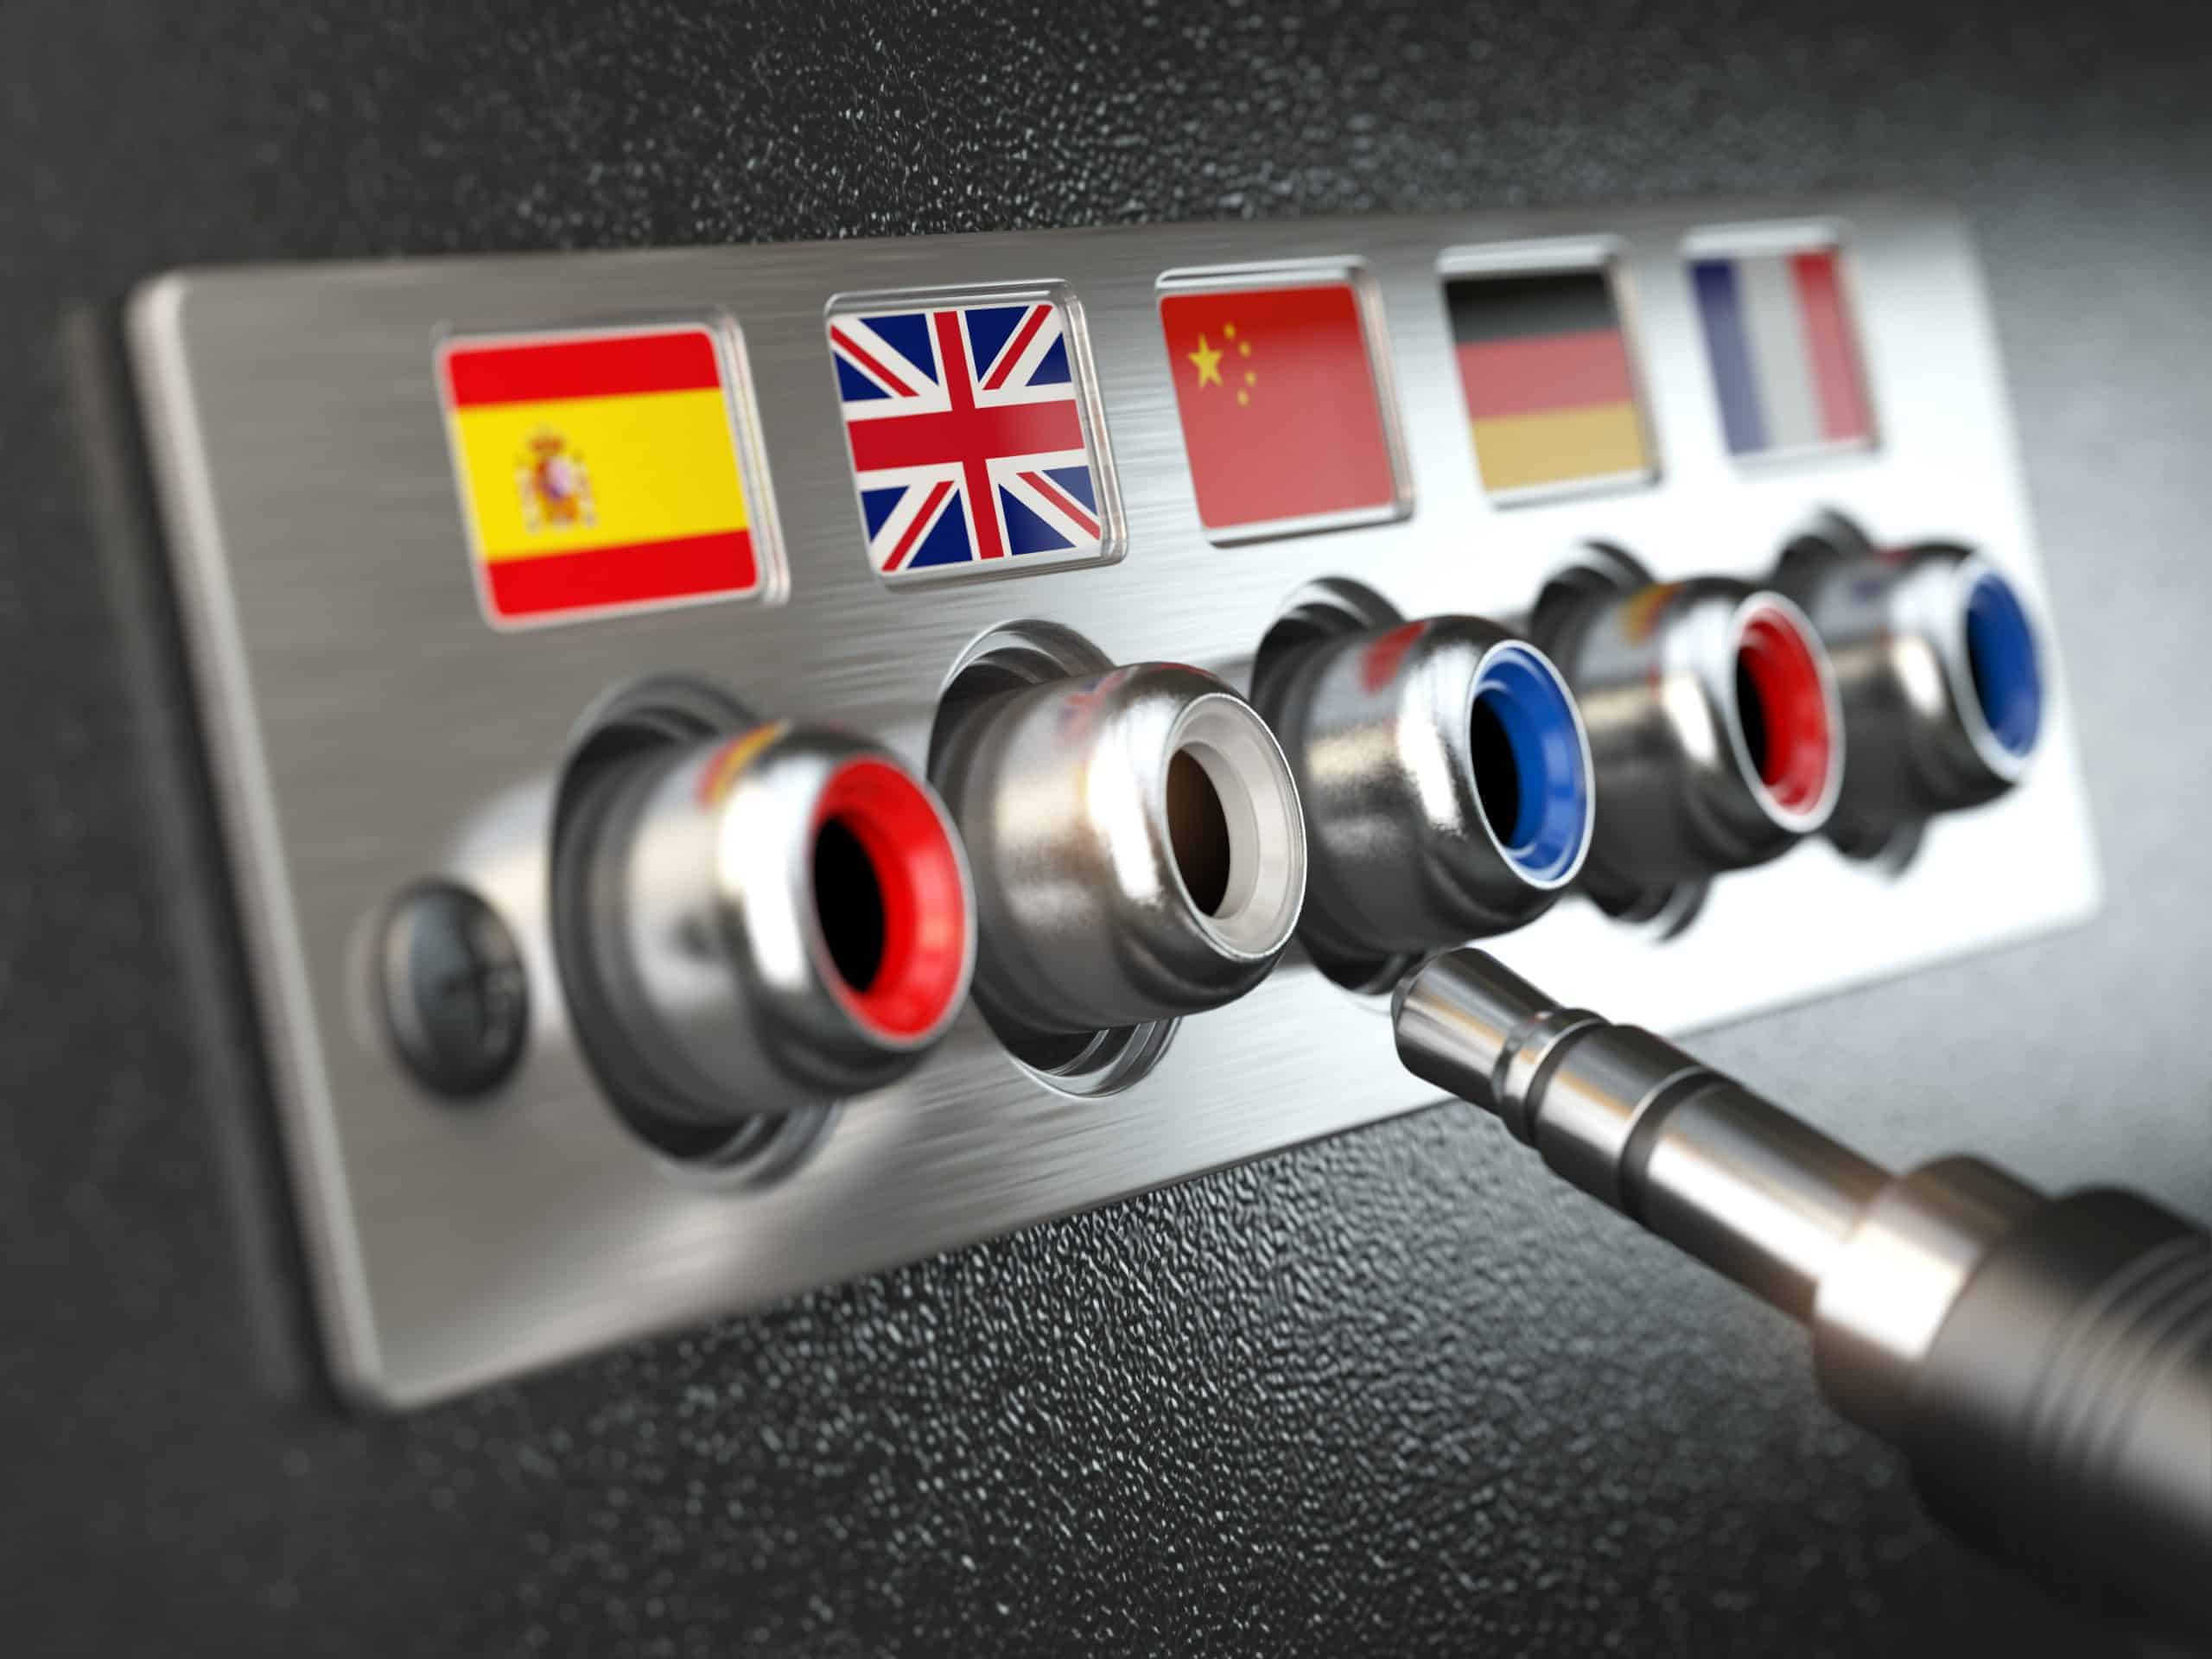 Select language. Learning, translate languages or audio guide concept. Audio  input output control panel with flags and plug.  3d illustration